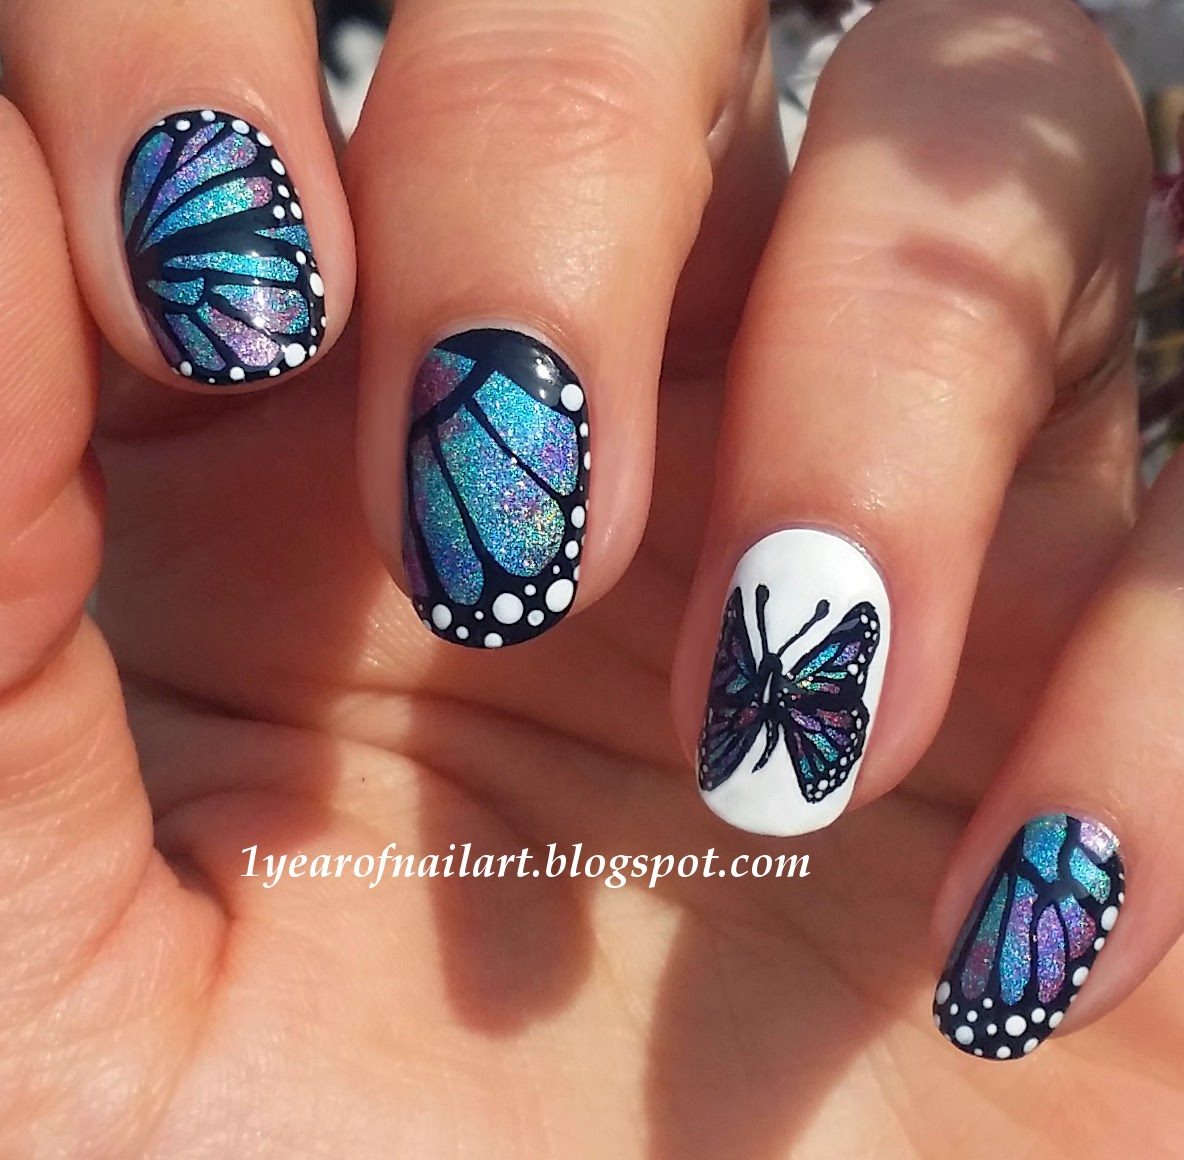 Pics Of Nail Art: 365+ Days Of Nail Art: March 2014